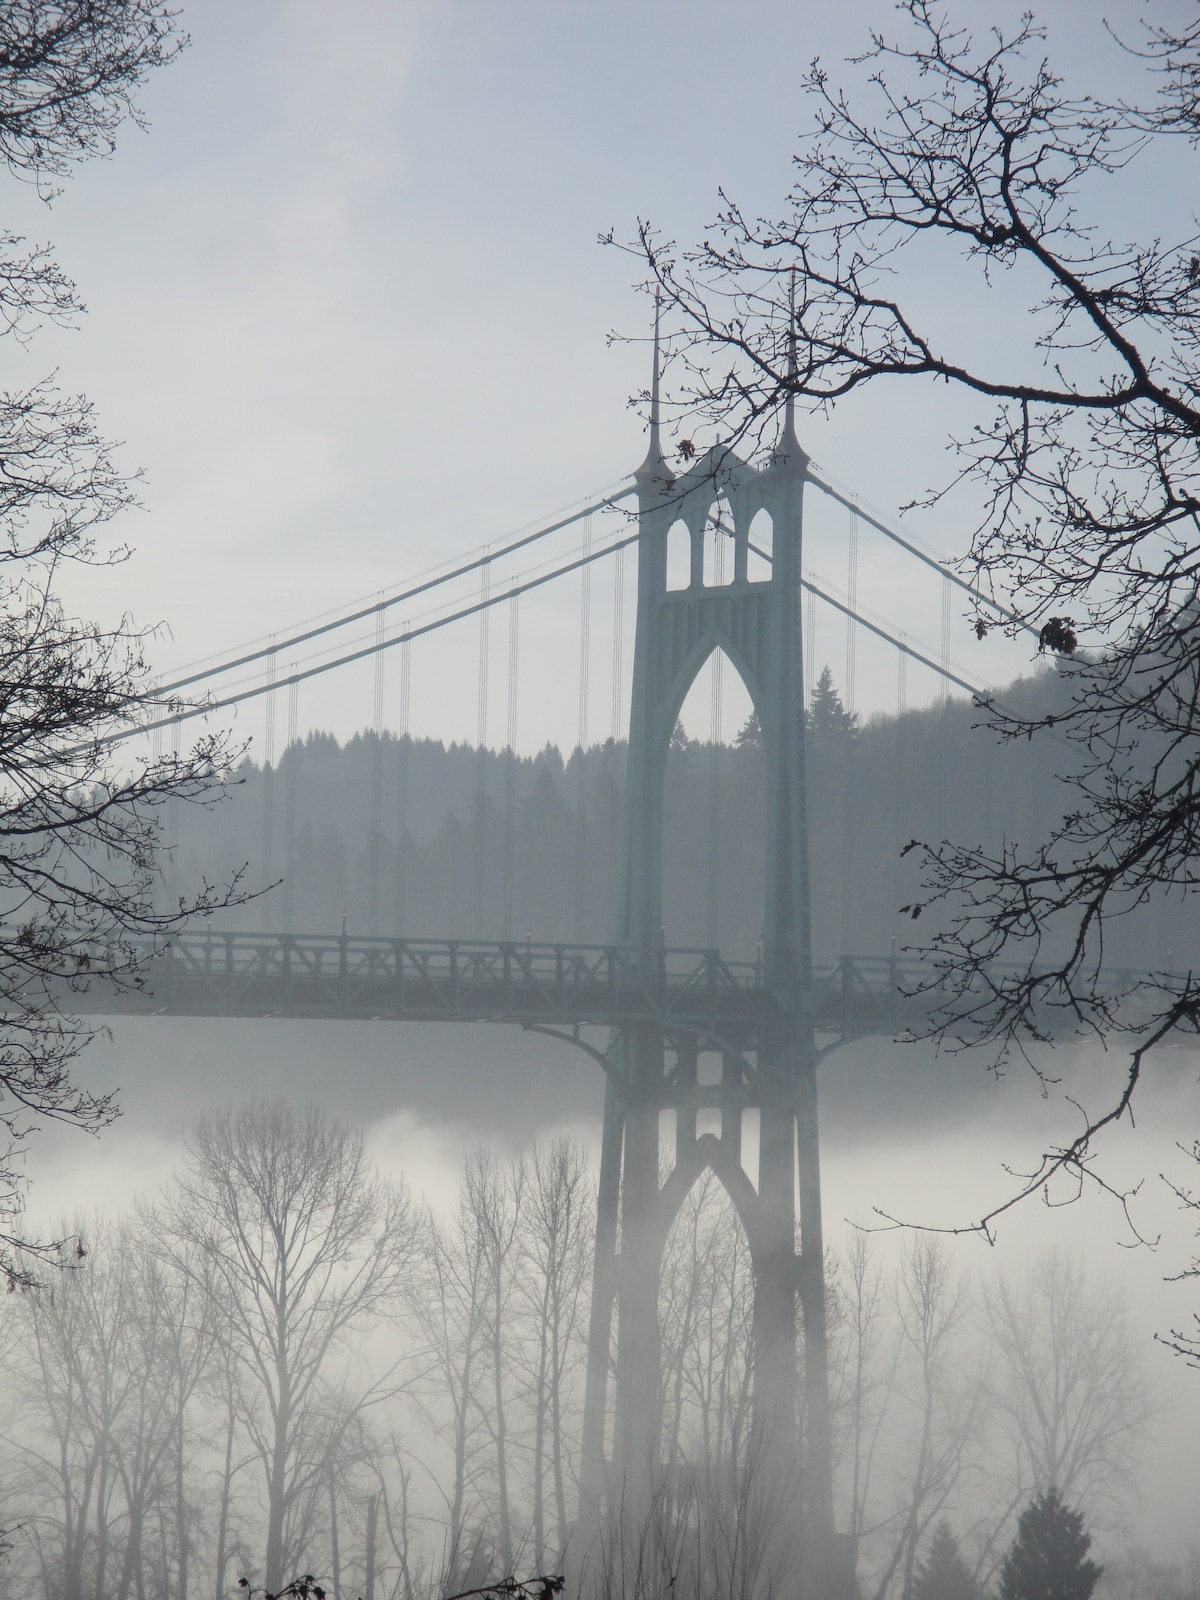 St. Johns bridgeview from the backyard